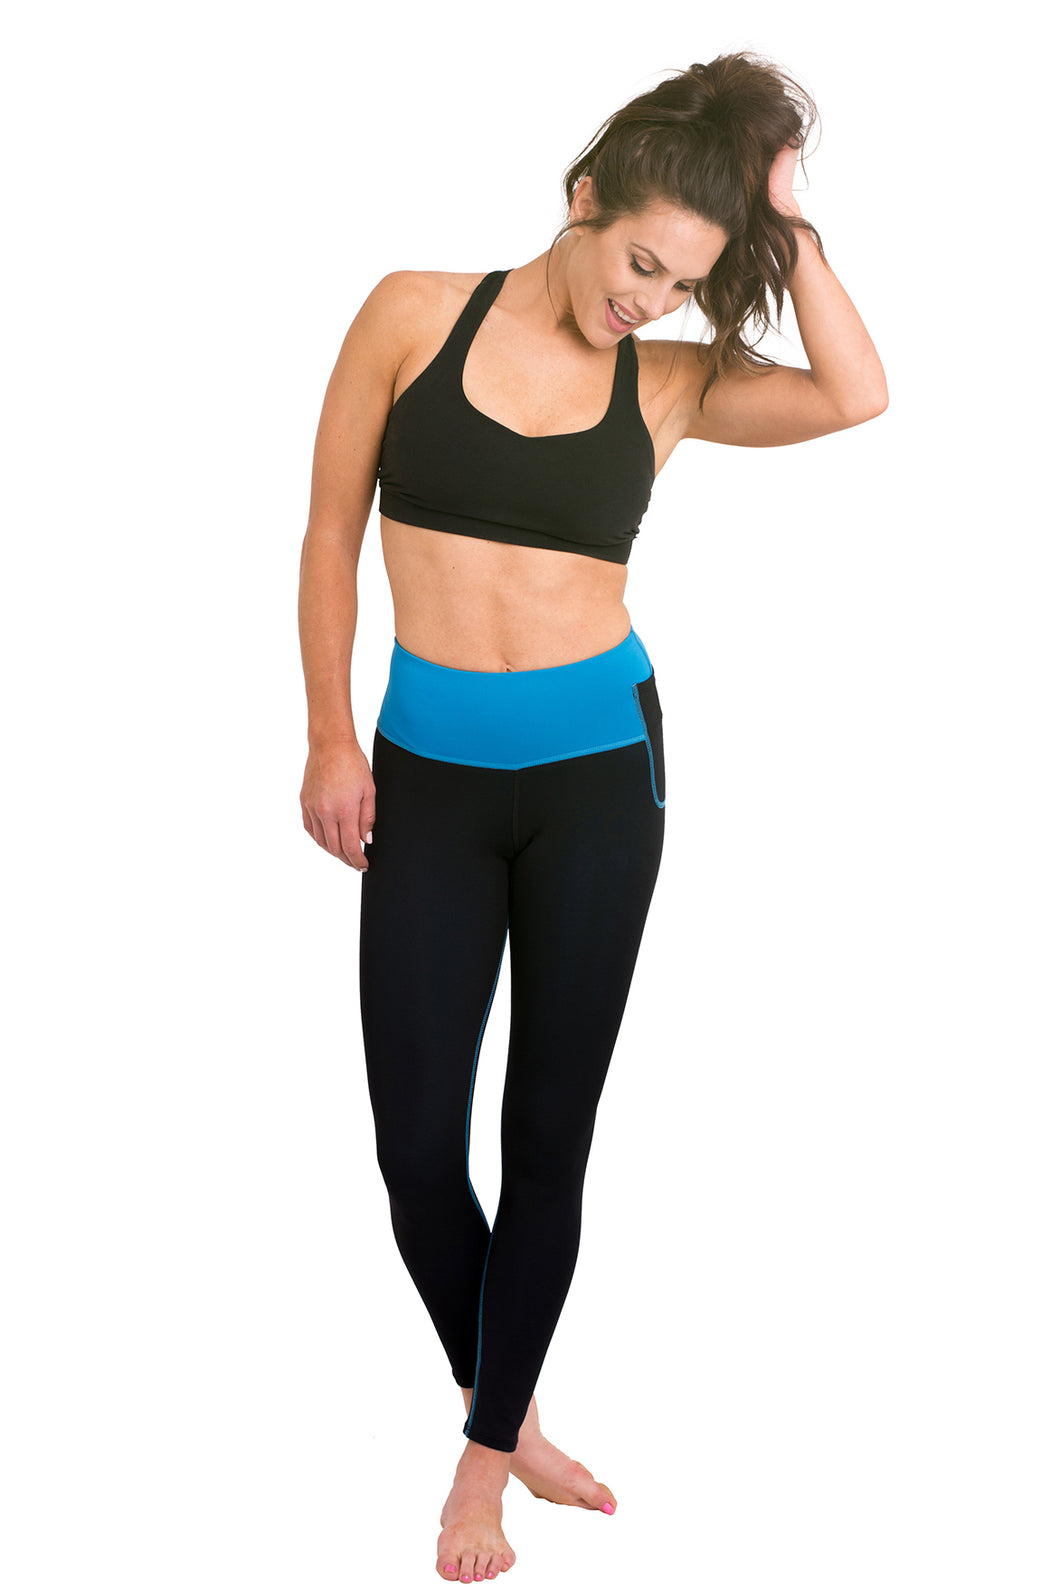 Mineral Infused Leggings - Turquoise / Black